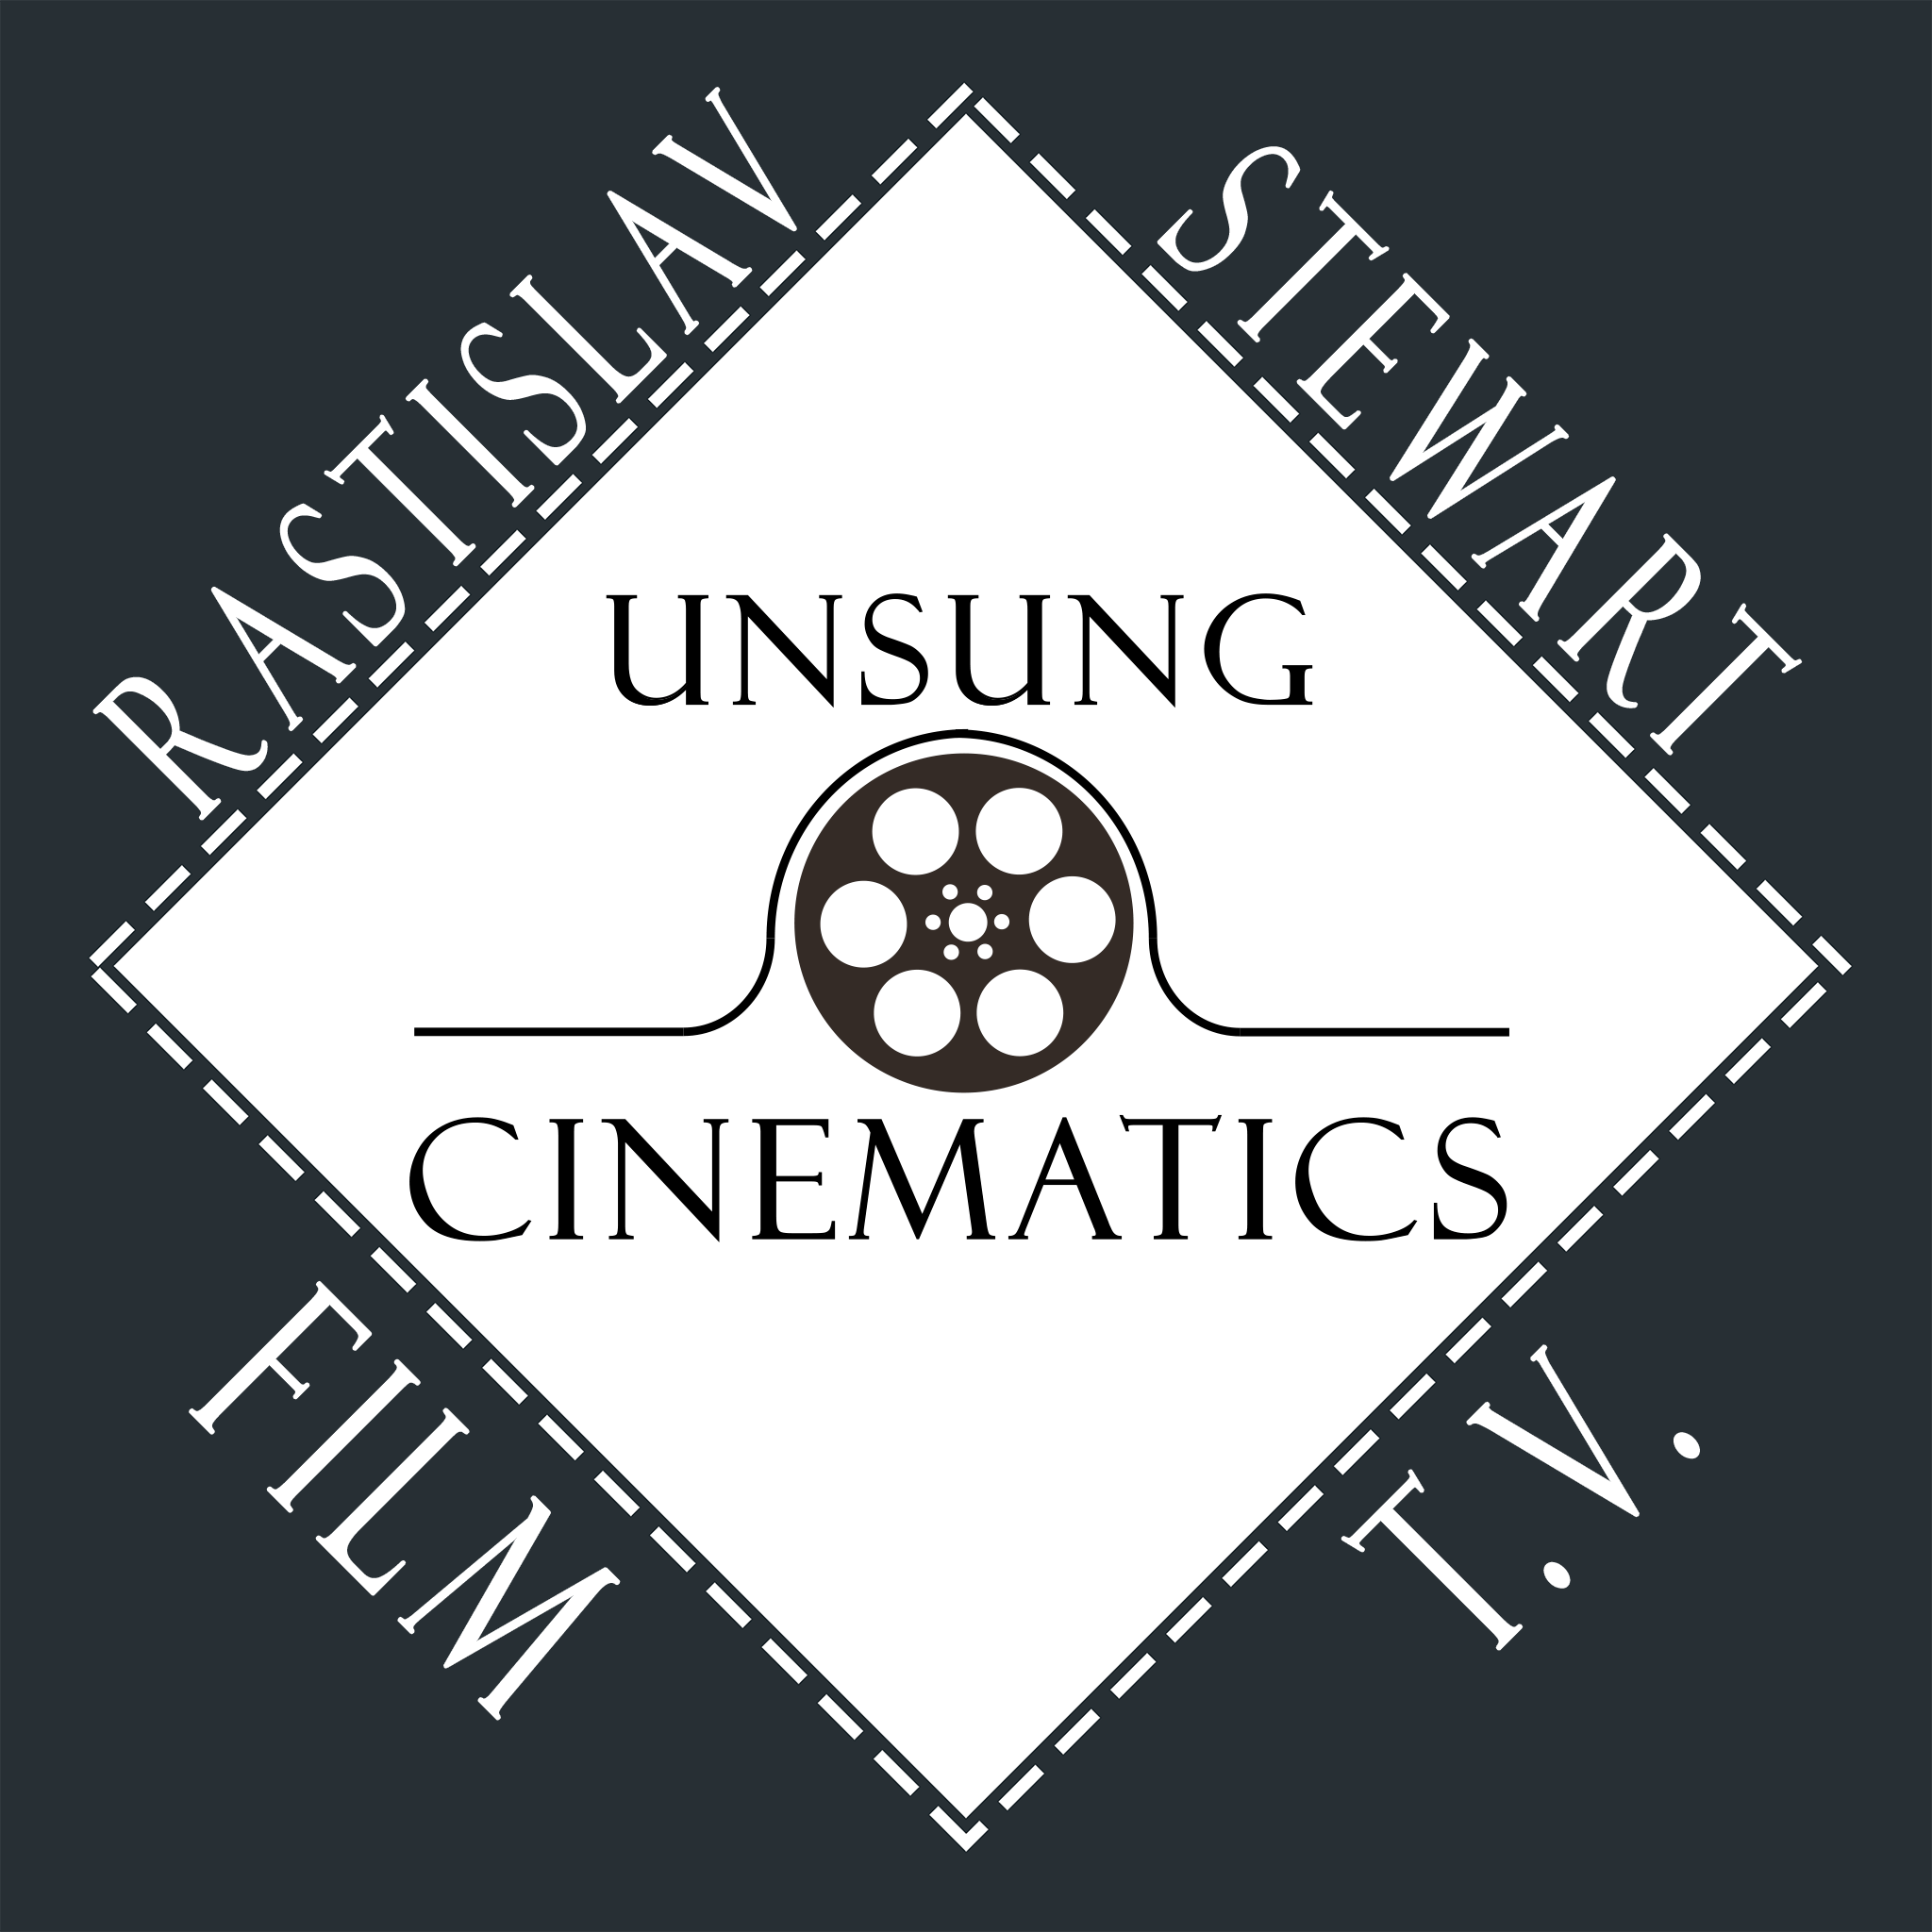 Unsung Cinematics Podcast Logo